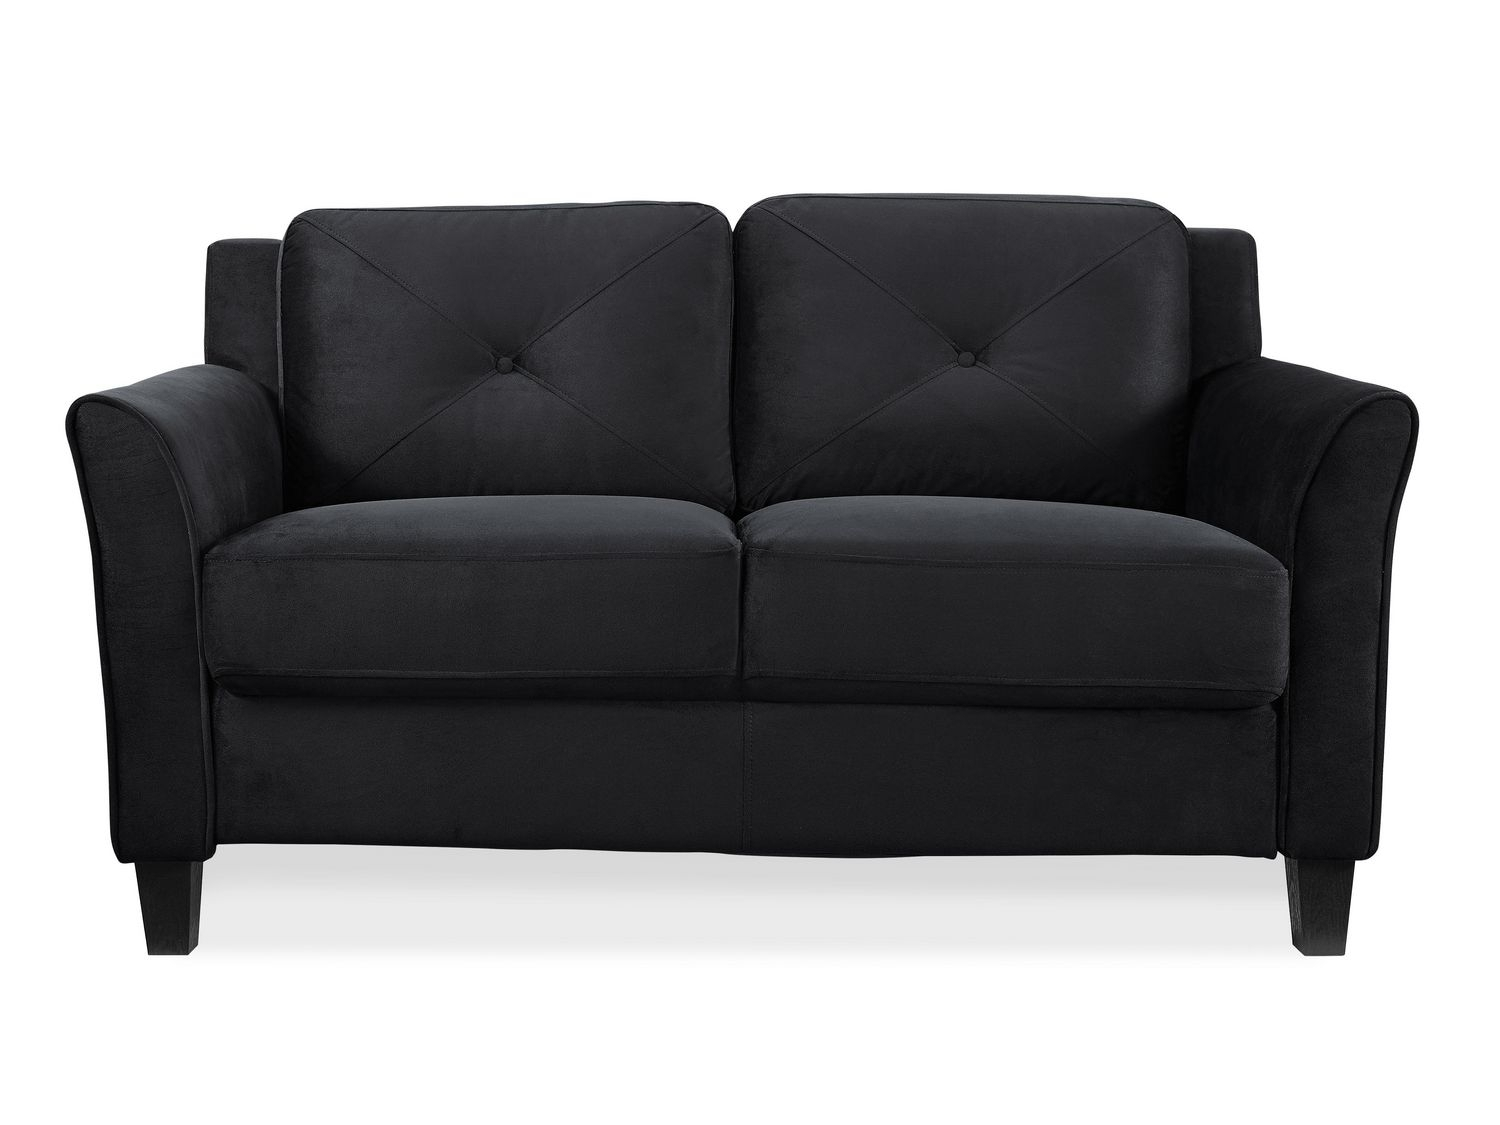 Sectional Sofas & Living Room Sets For Home | Walmart Canada Intended For Sectional Sofas At Walmart (Image 9 of 10)